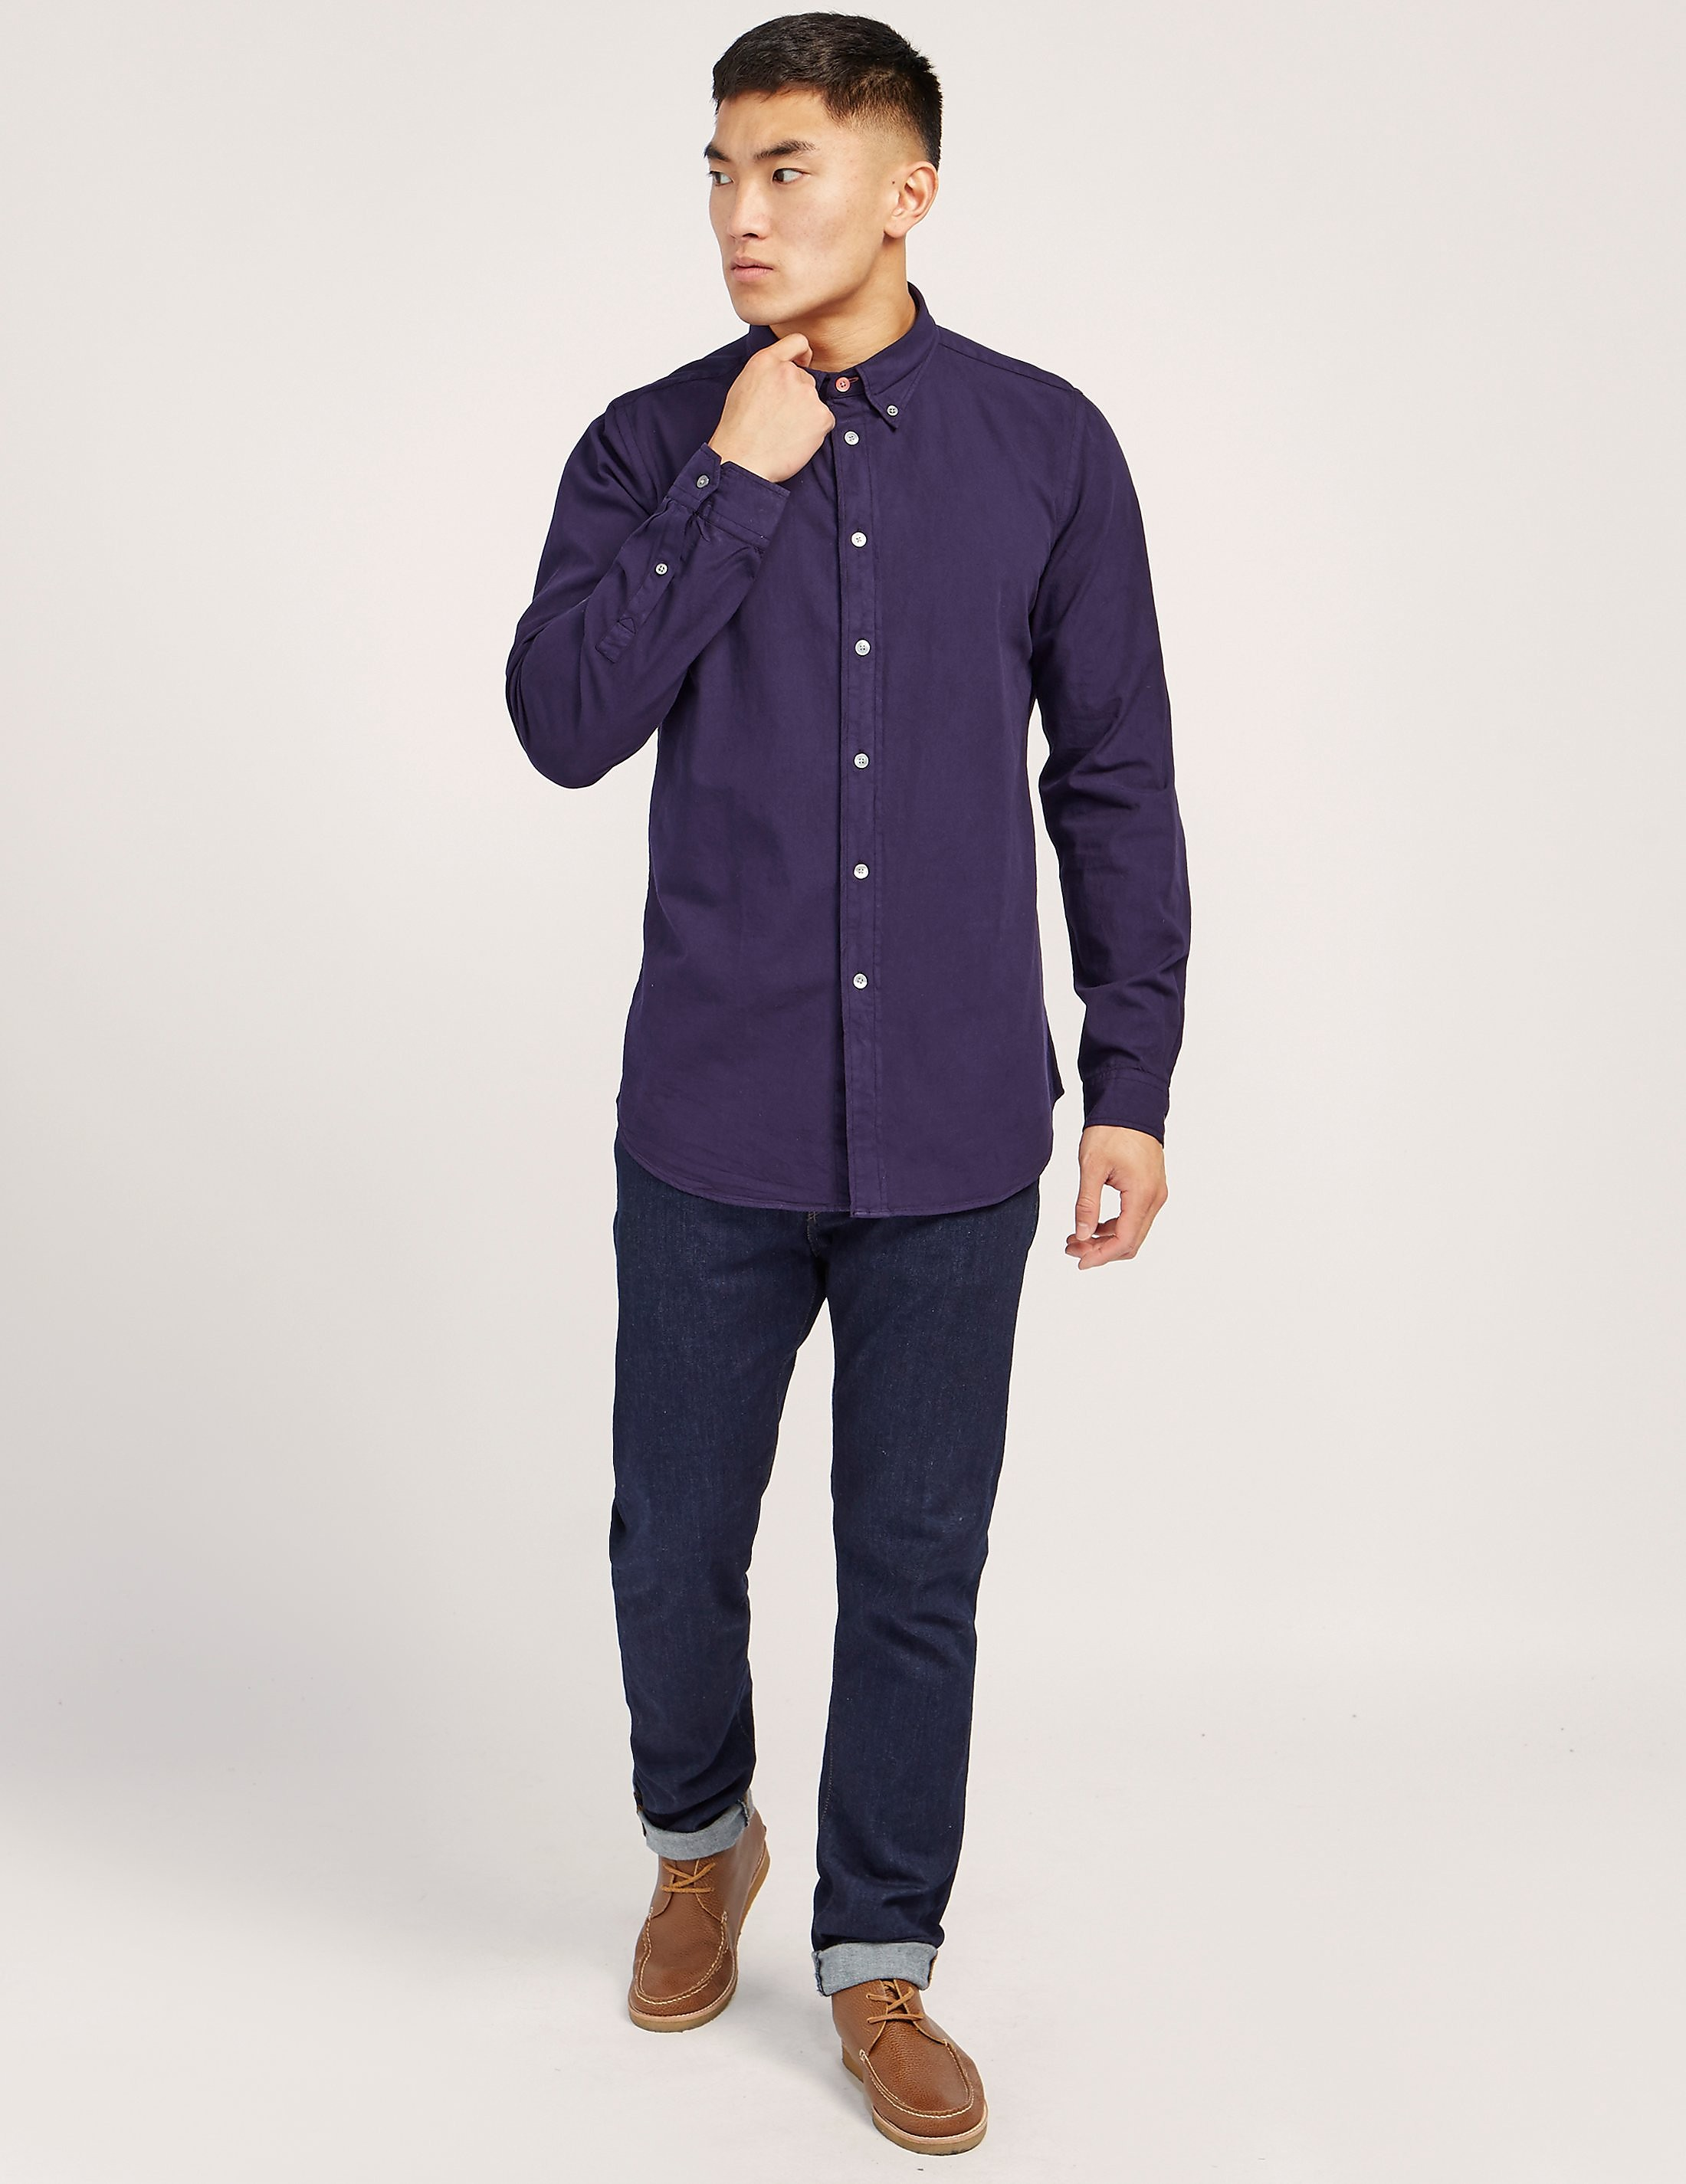 Paul Smith Garment Dyed Long Sleeve Shirt